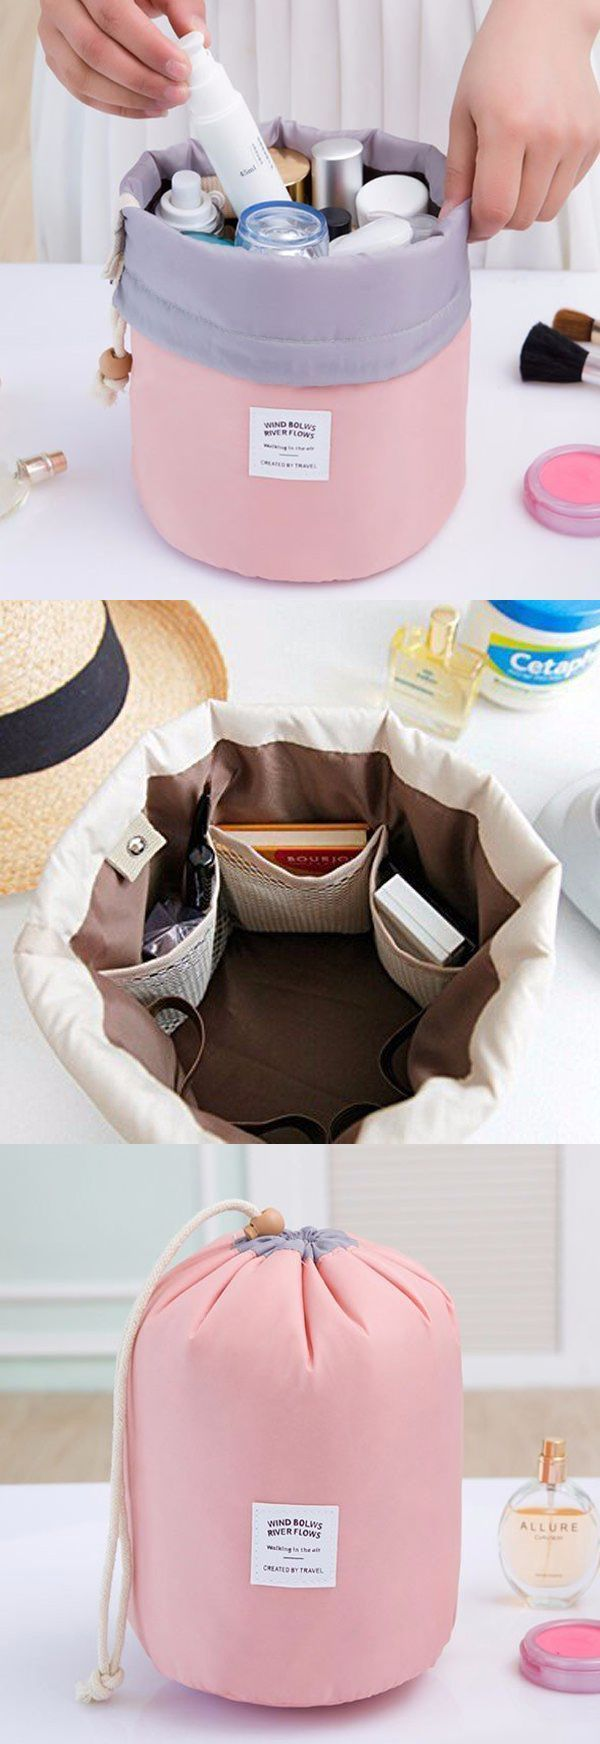 Storage Kit Toiletry Kit Bathroom Amenities Travel Storage Bag US$8.47  Cosmetic Bag For Woman_Portable Travel Cosmetic Bag_Beauty Cosmetics_Travel Bags For WomenKIT  KIT may refer to: